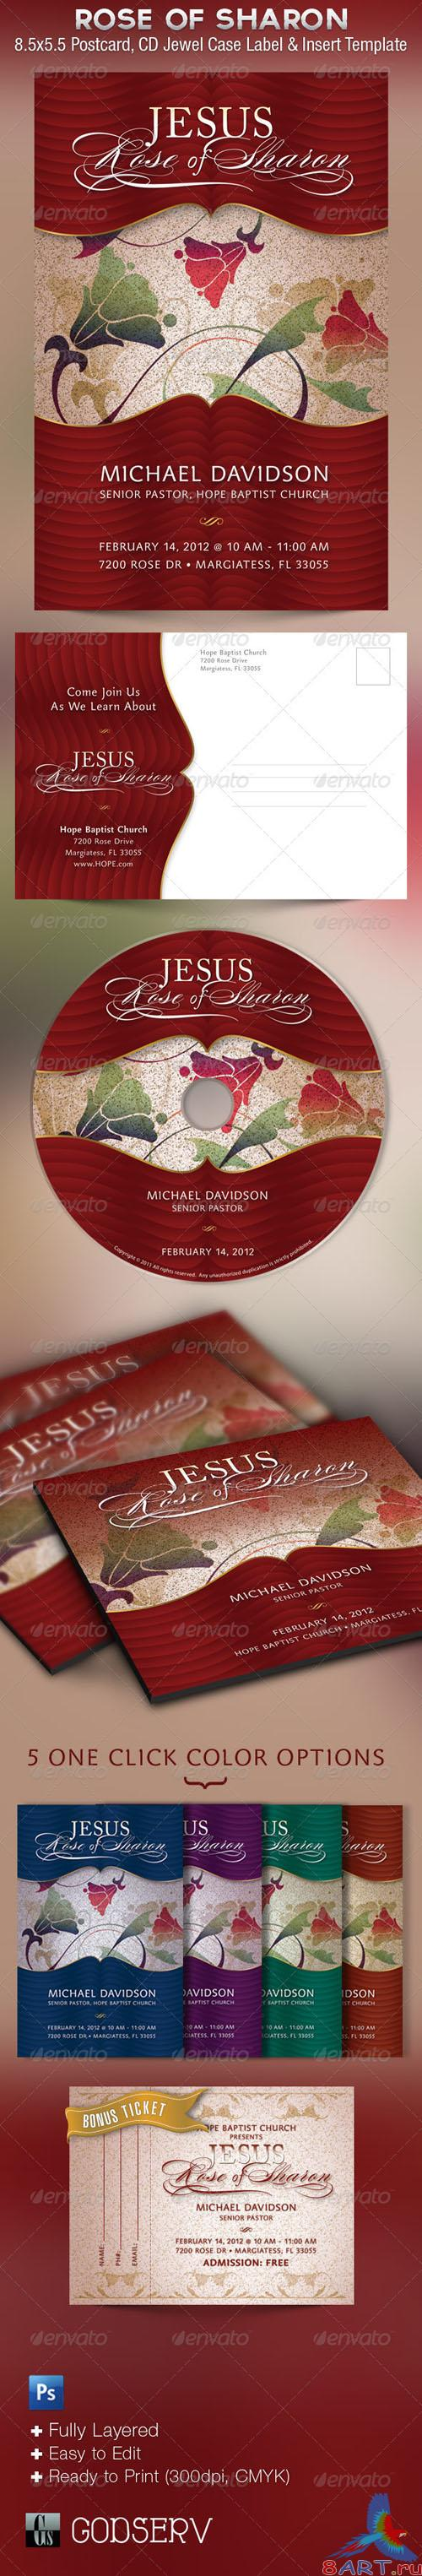 GraphicRiver - Rose of Sharon Sermon Postcard and CD Template 1395976